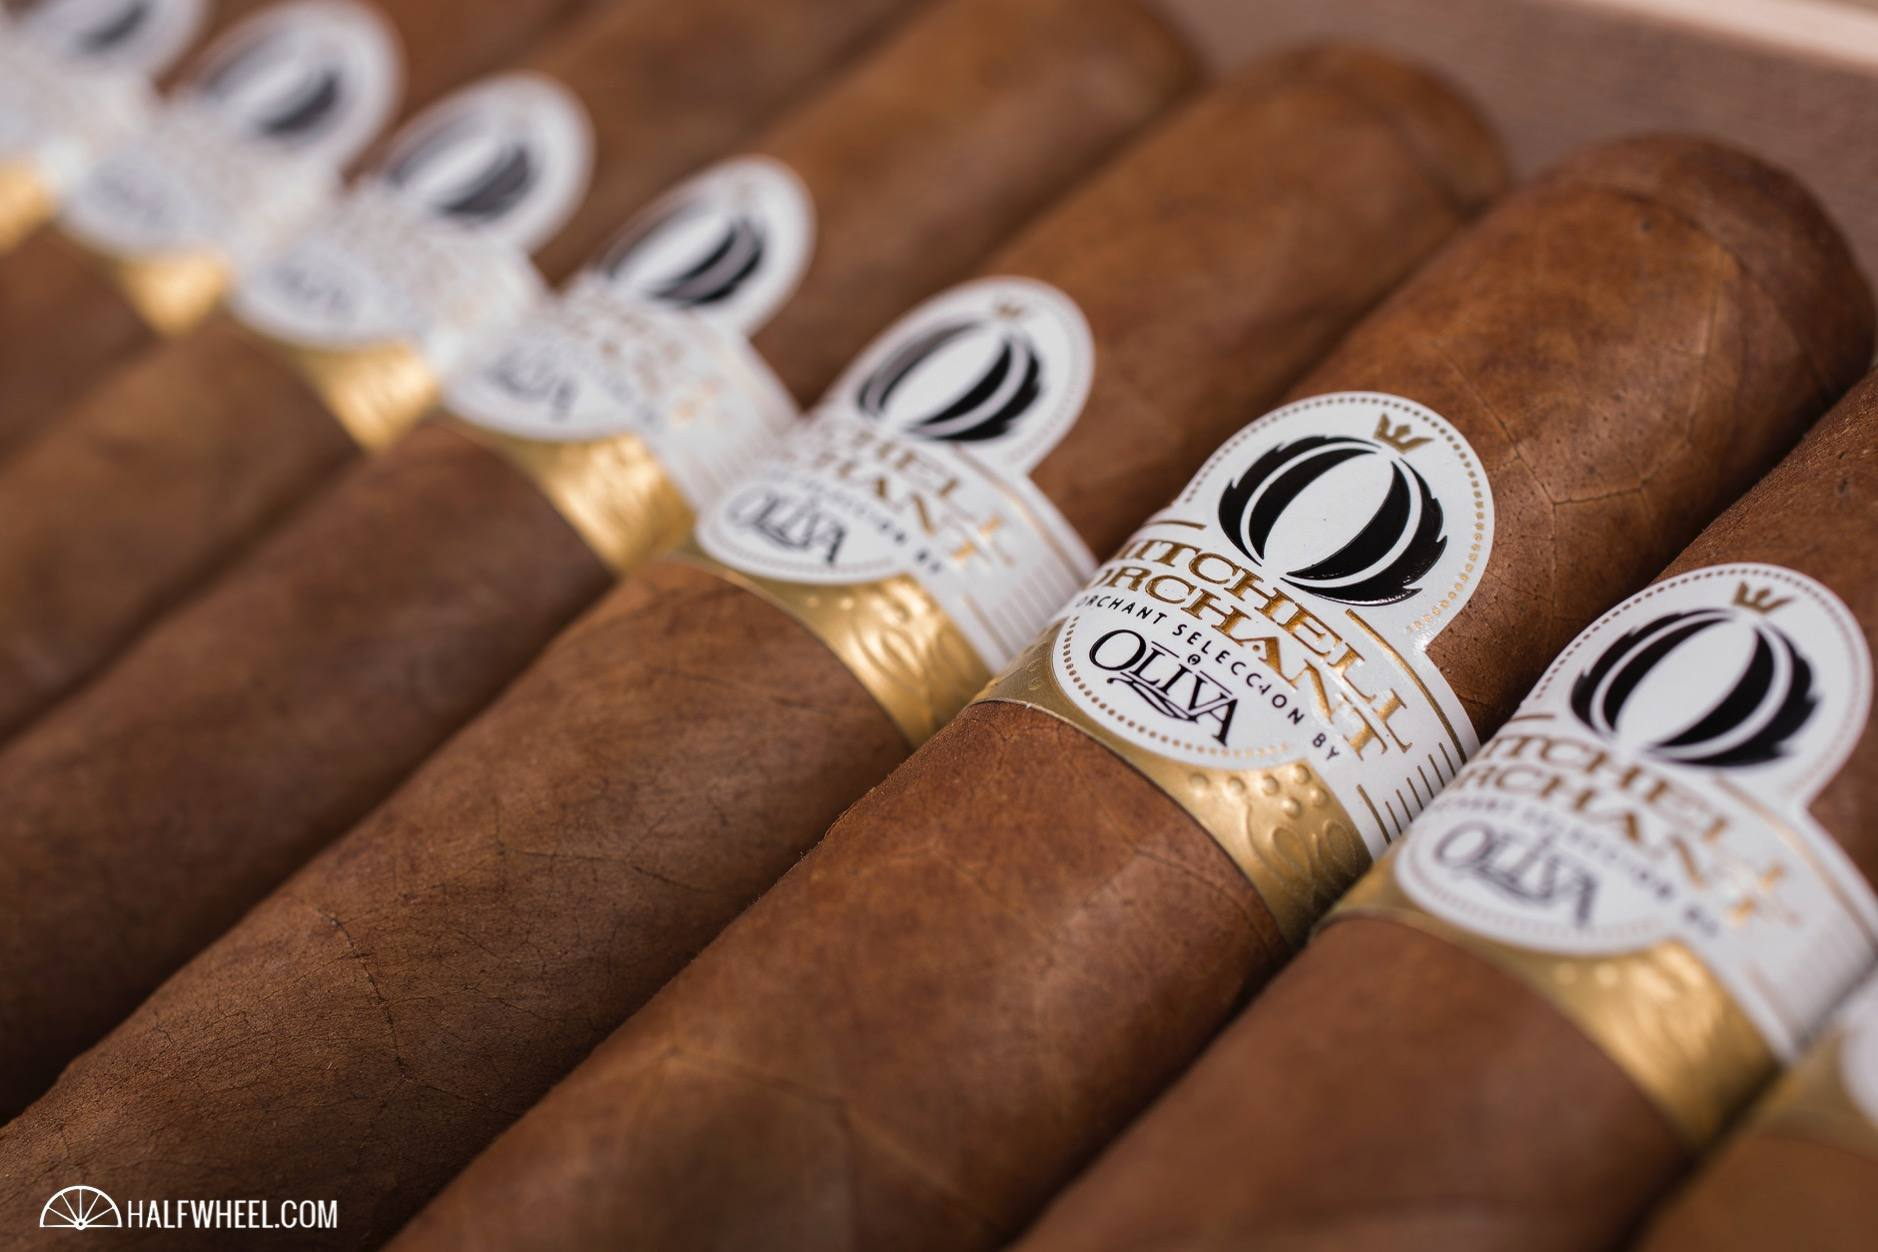 Orchant Seleccion by Oliva Shorty